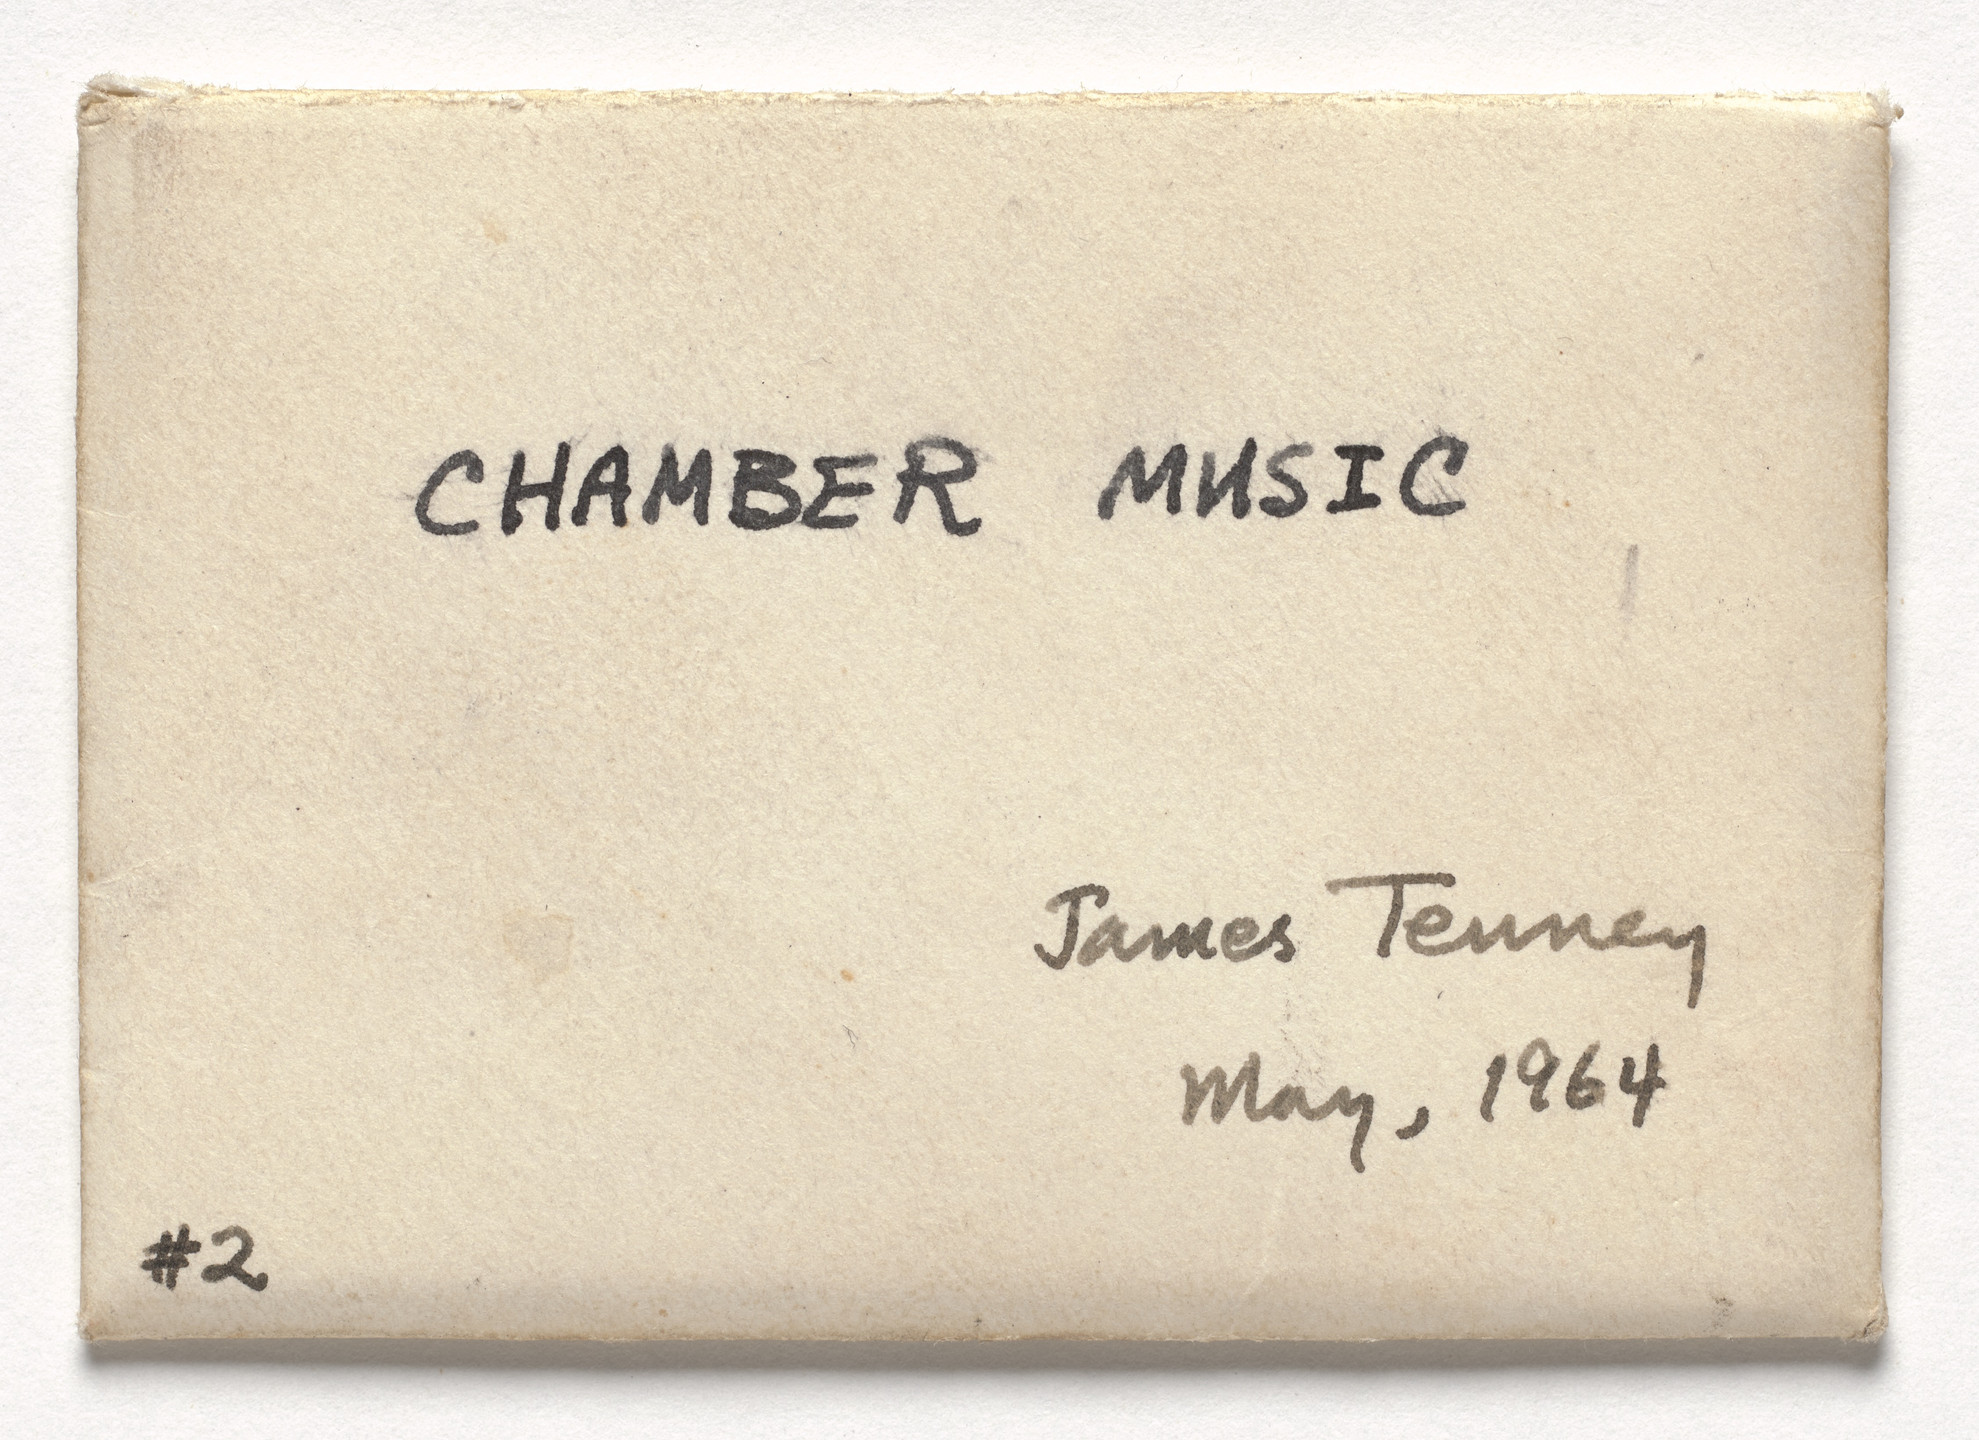 James Tenney. Chamber Music. 1964